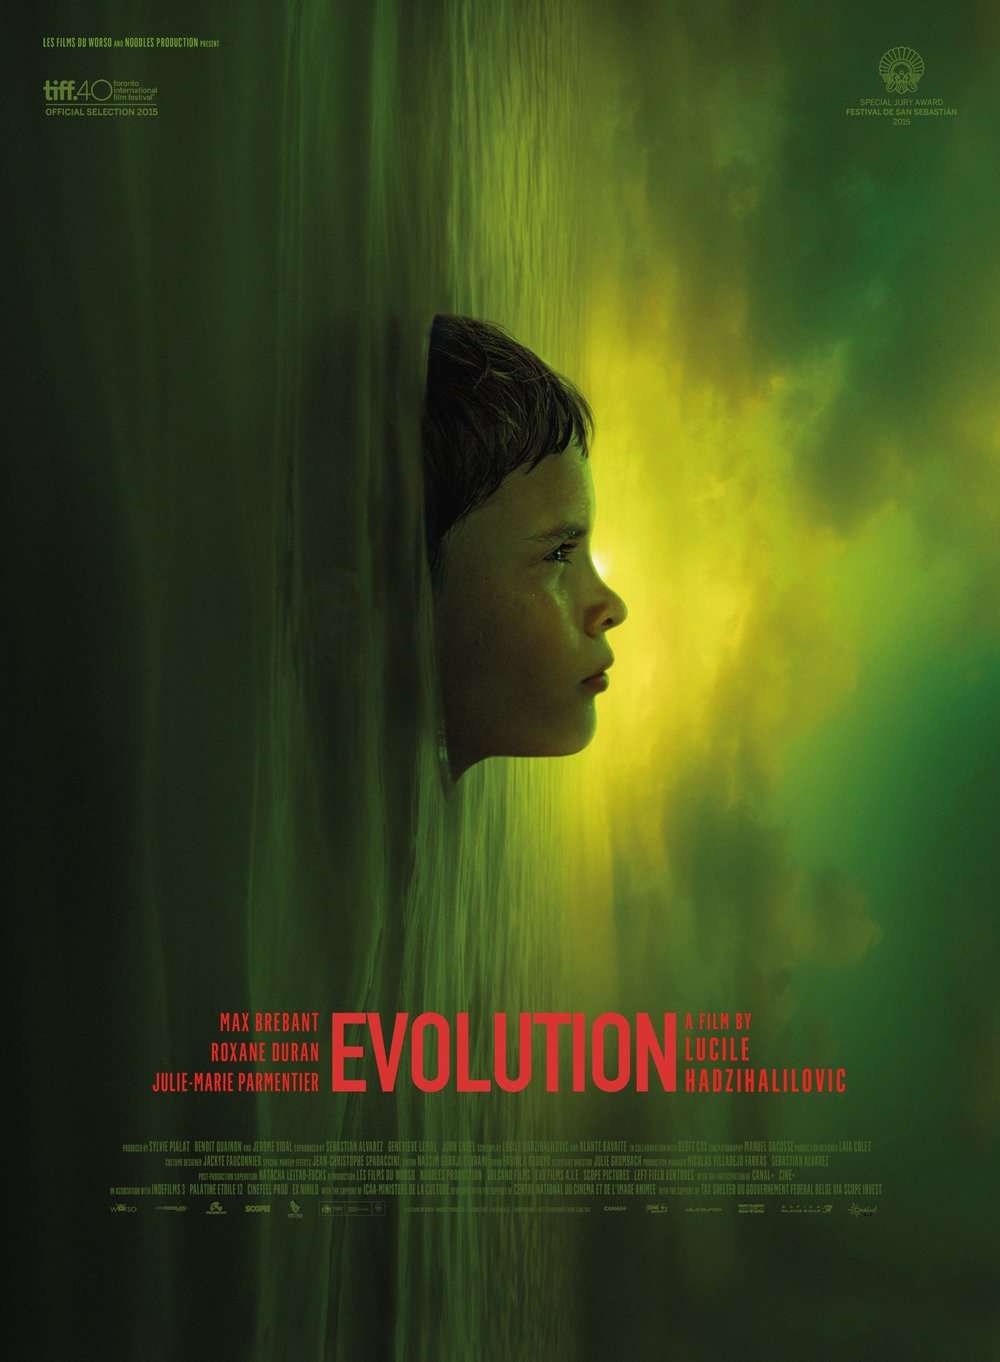 creepy-mind-bending-trailer-for-the-horror-film-evolution